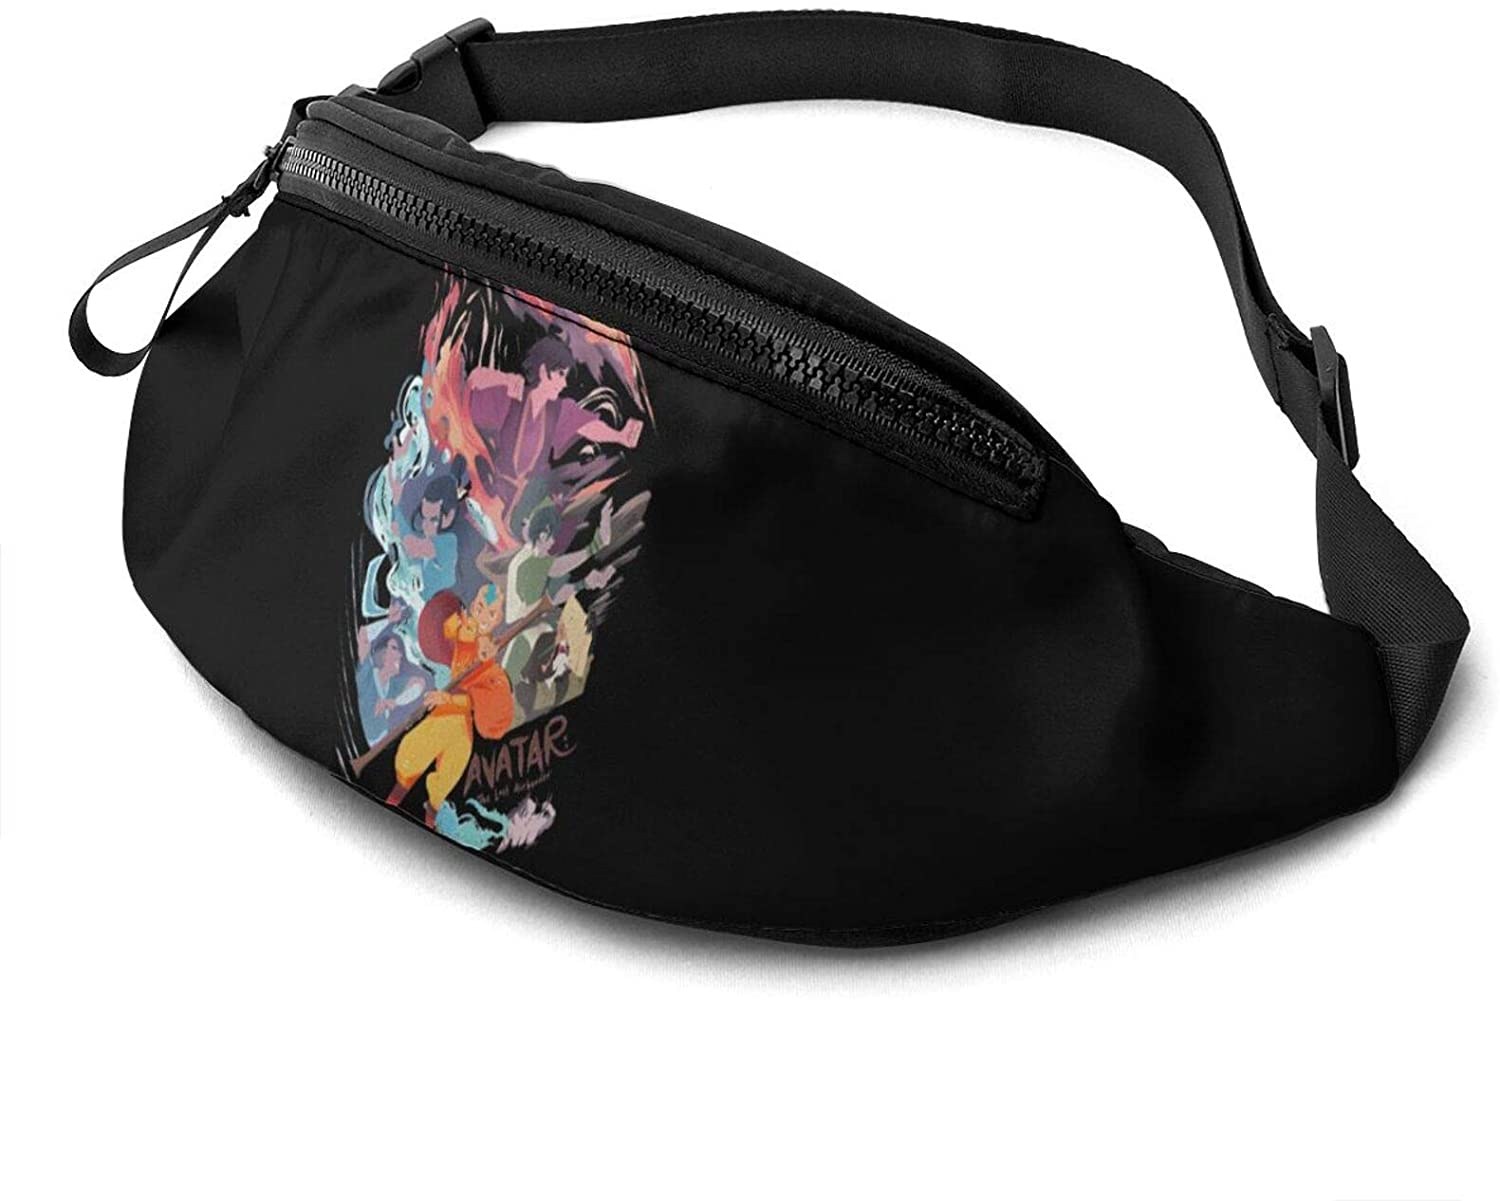 Avatar The Last Airbender Cool Running Sports Fitness Travel Waist Bag for Unisex